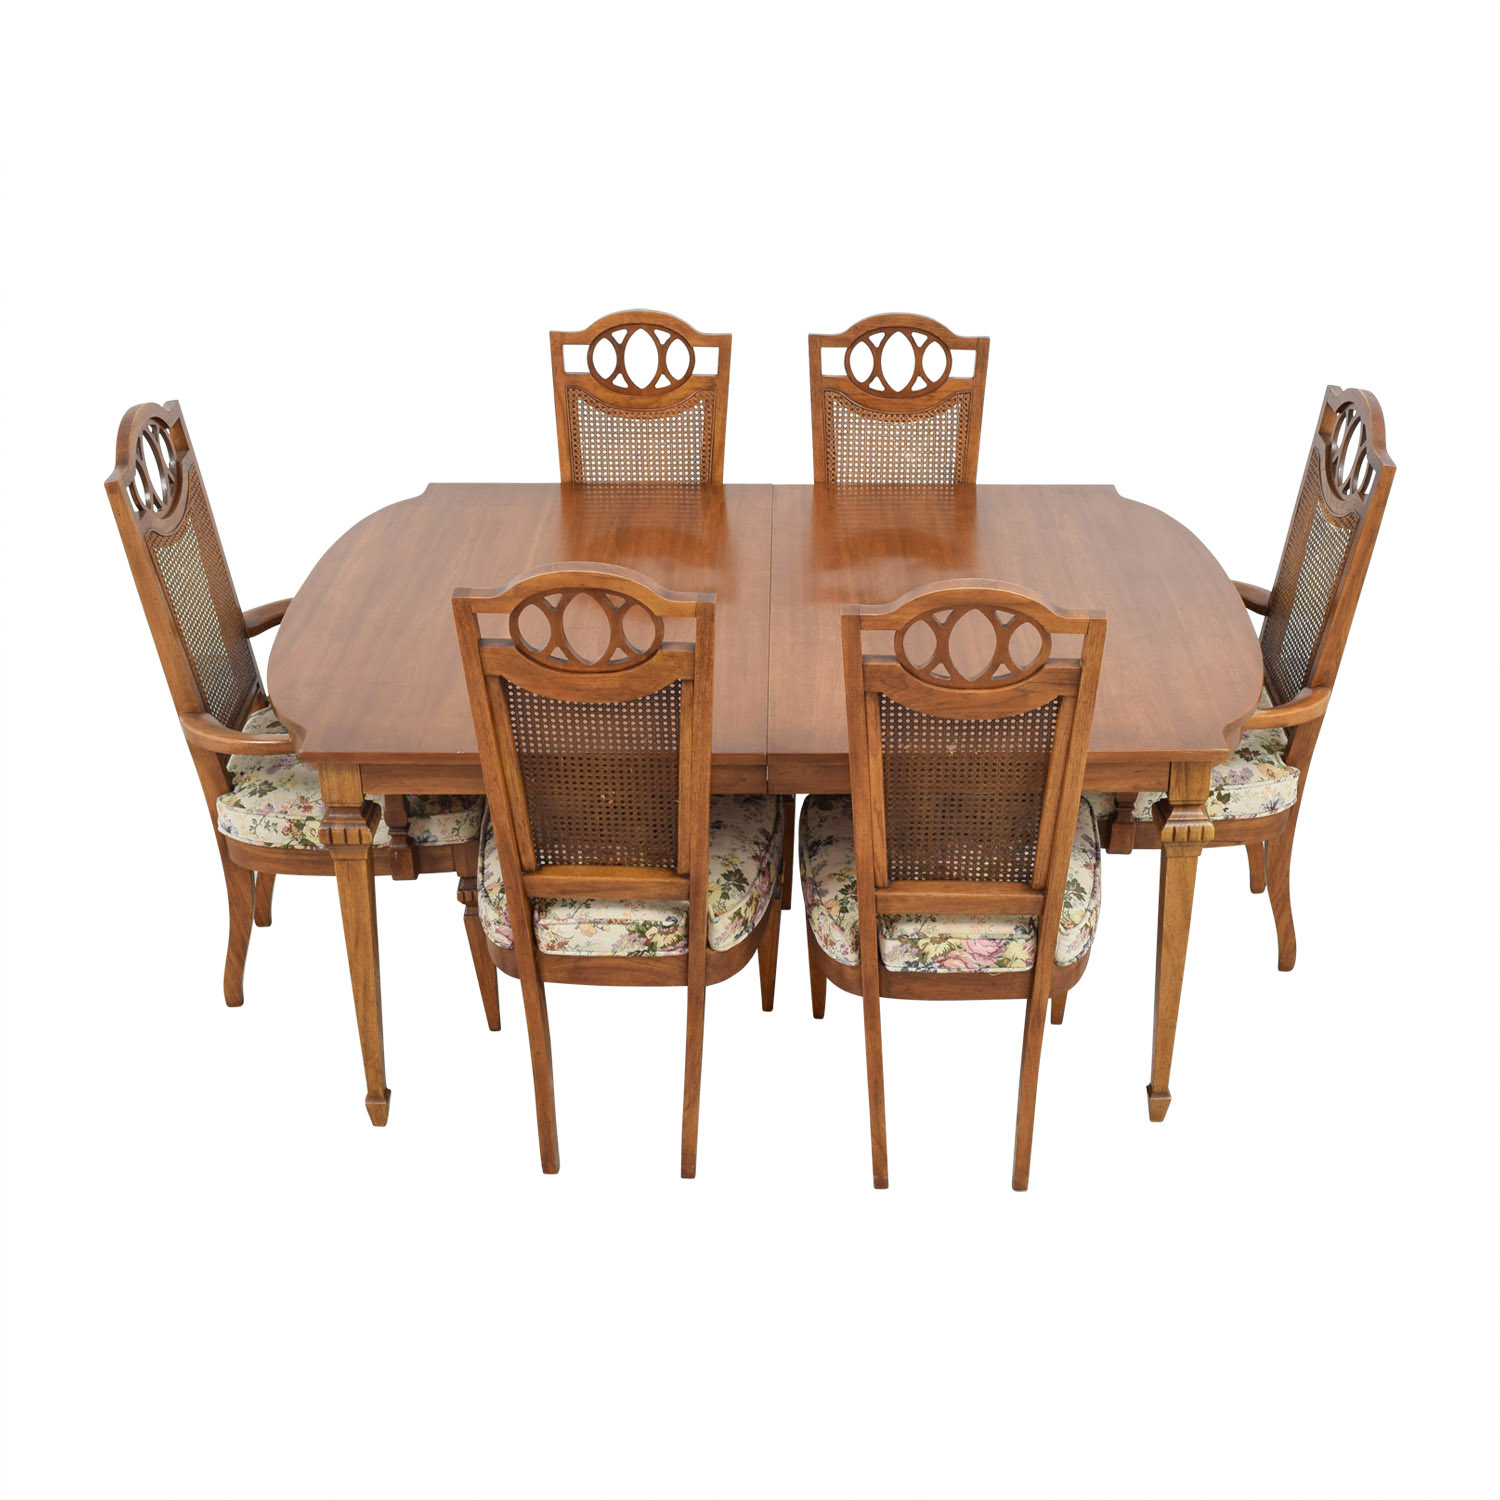 Italian Dining Chairs 90 Off Italian Dining Set With Leaf Extensions And Floral Upholstered Chairs Tables